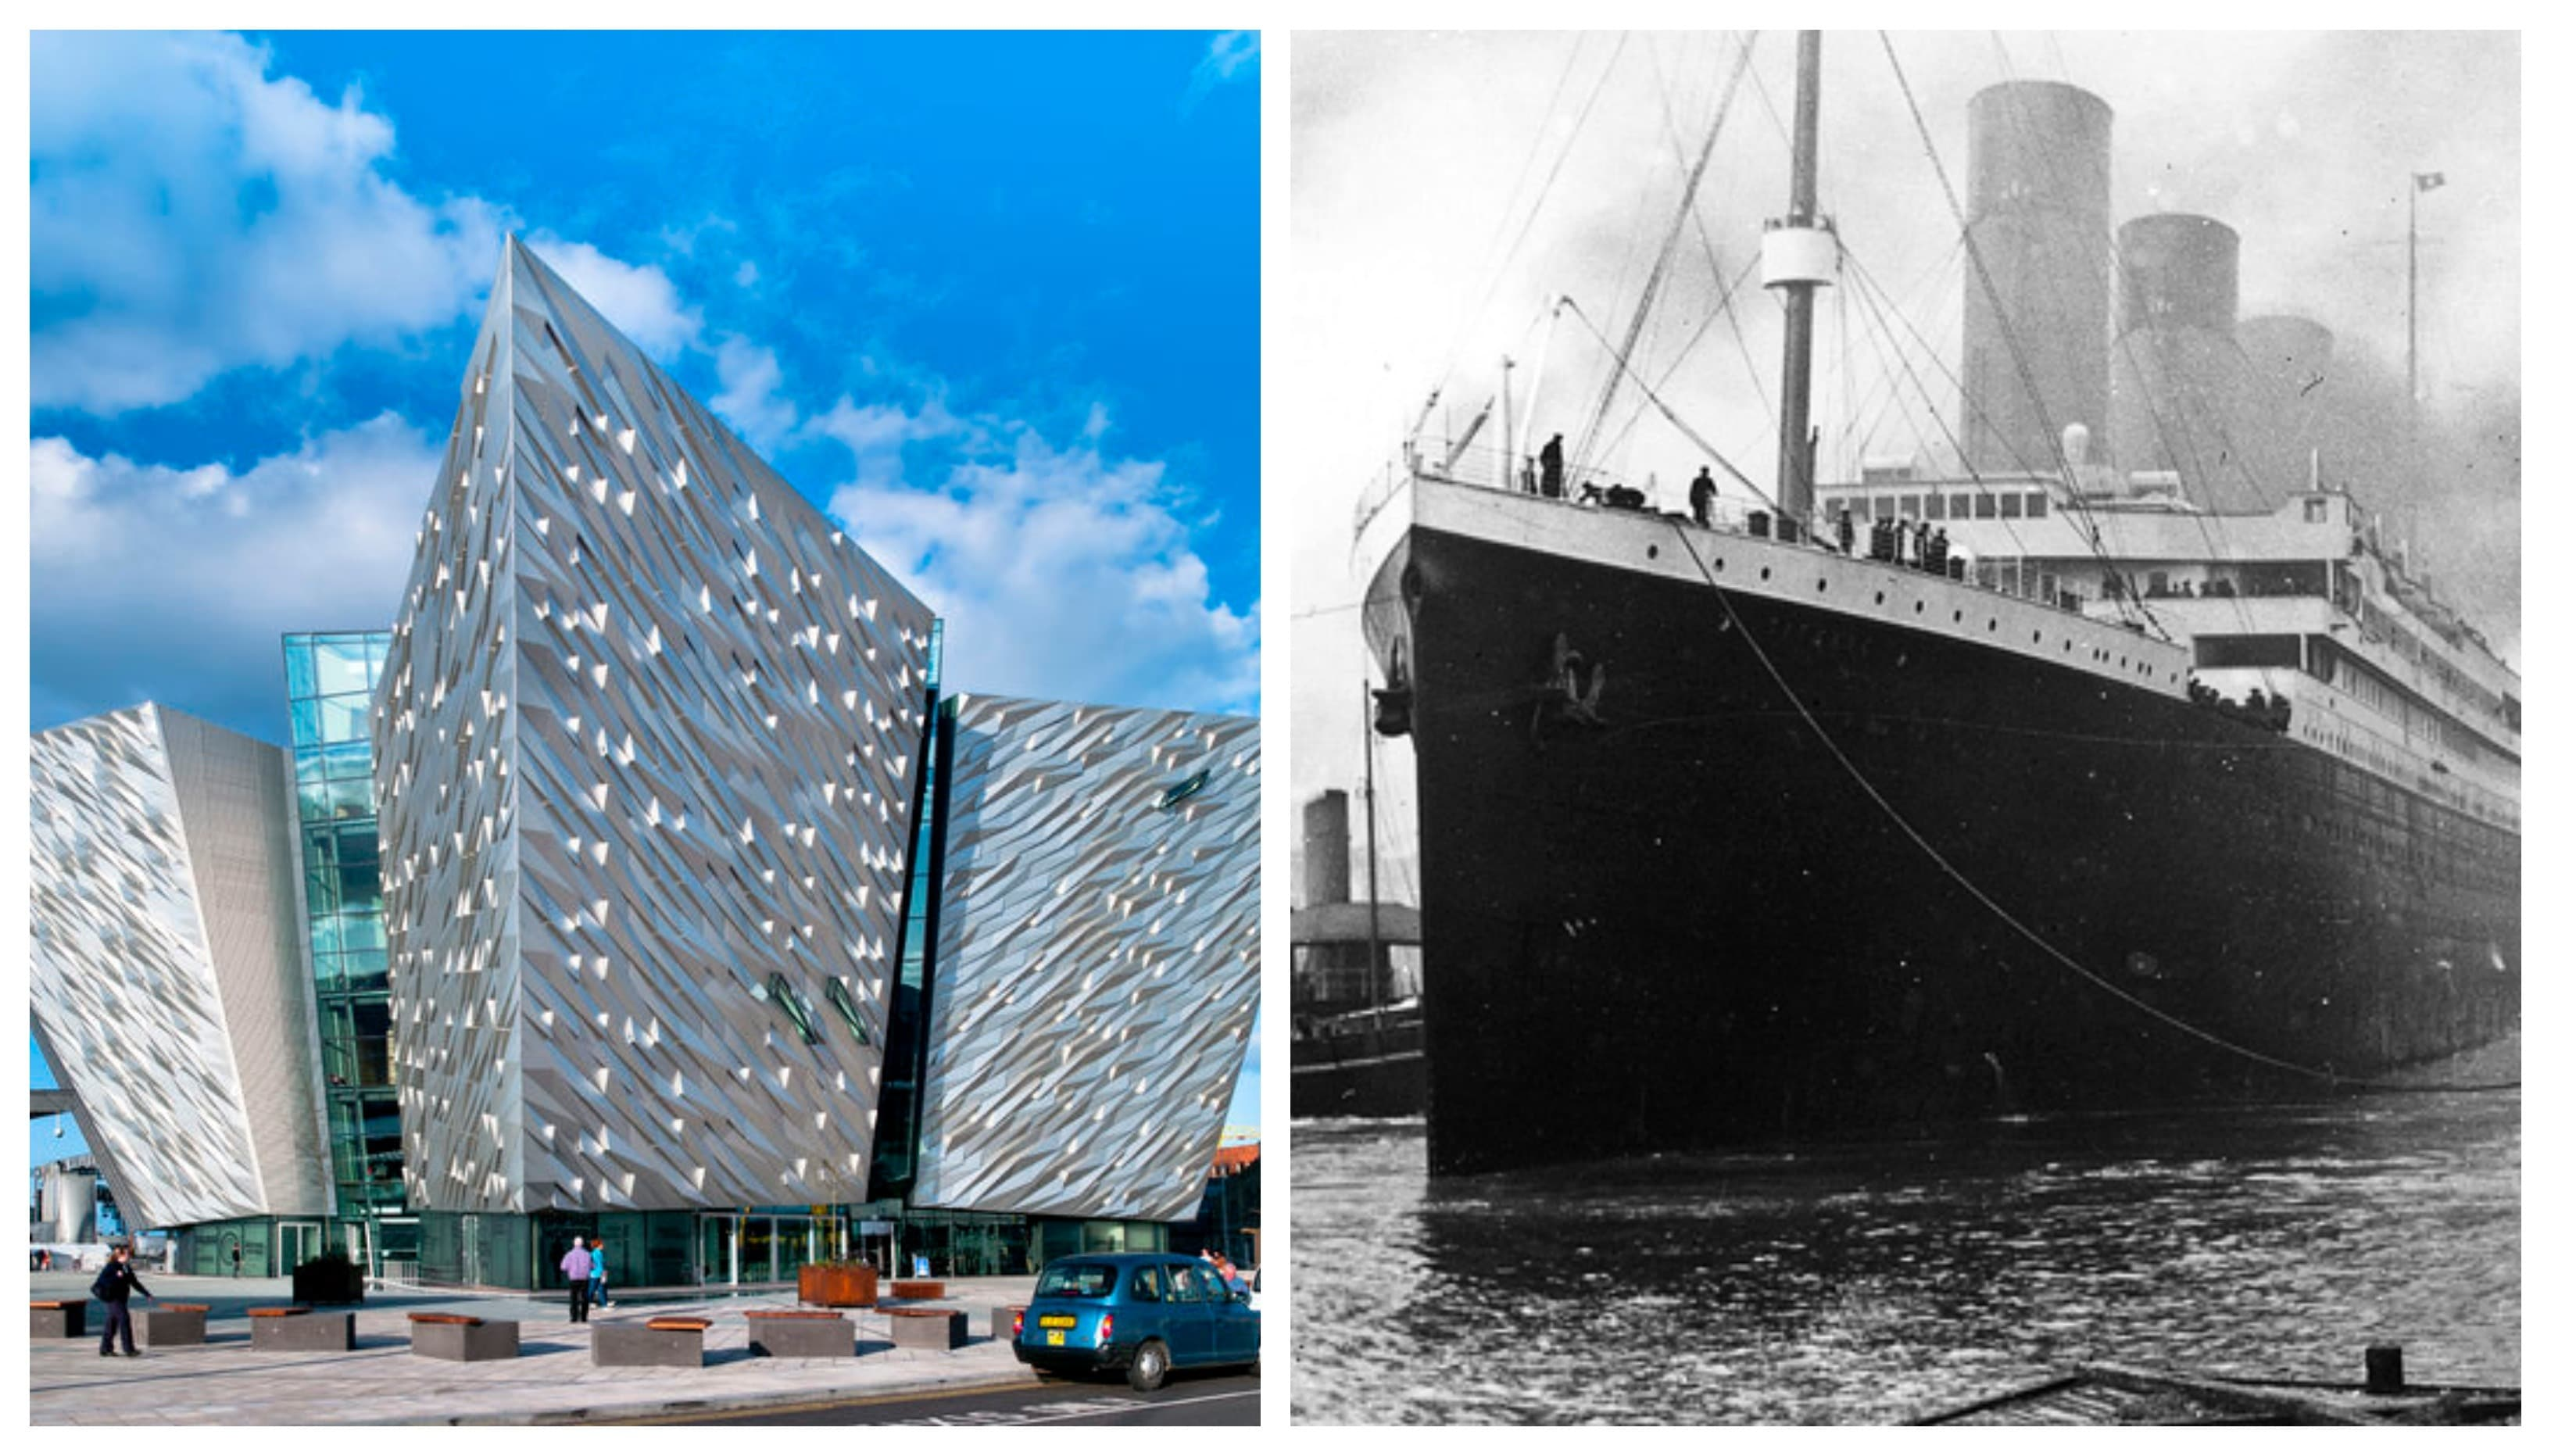 10 incredible facts you never knew about the titanic